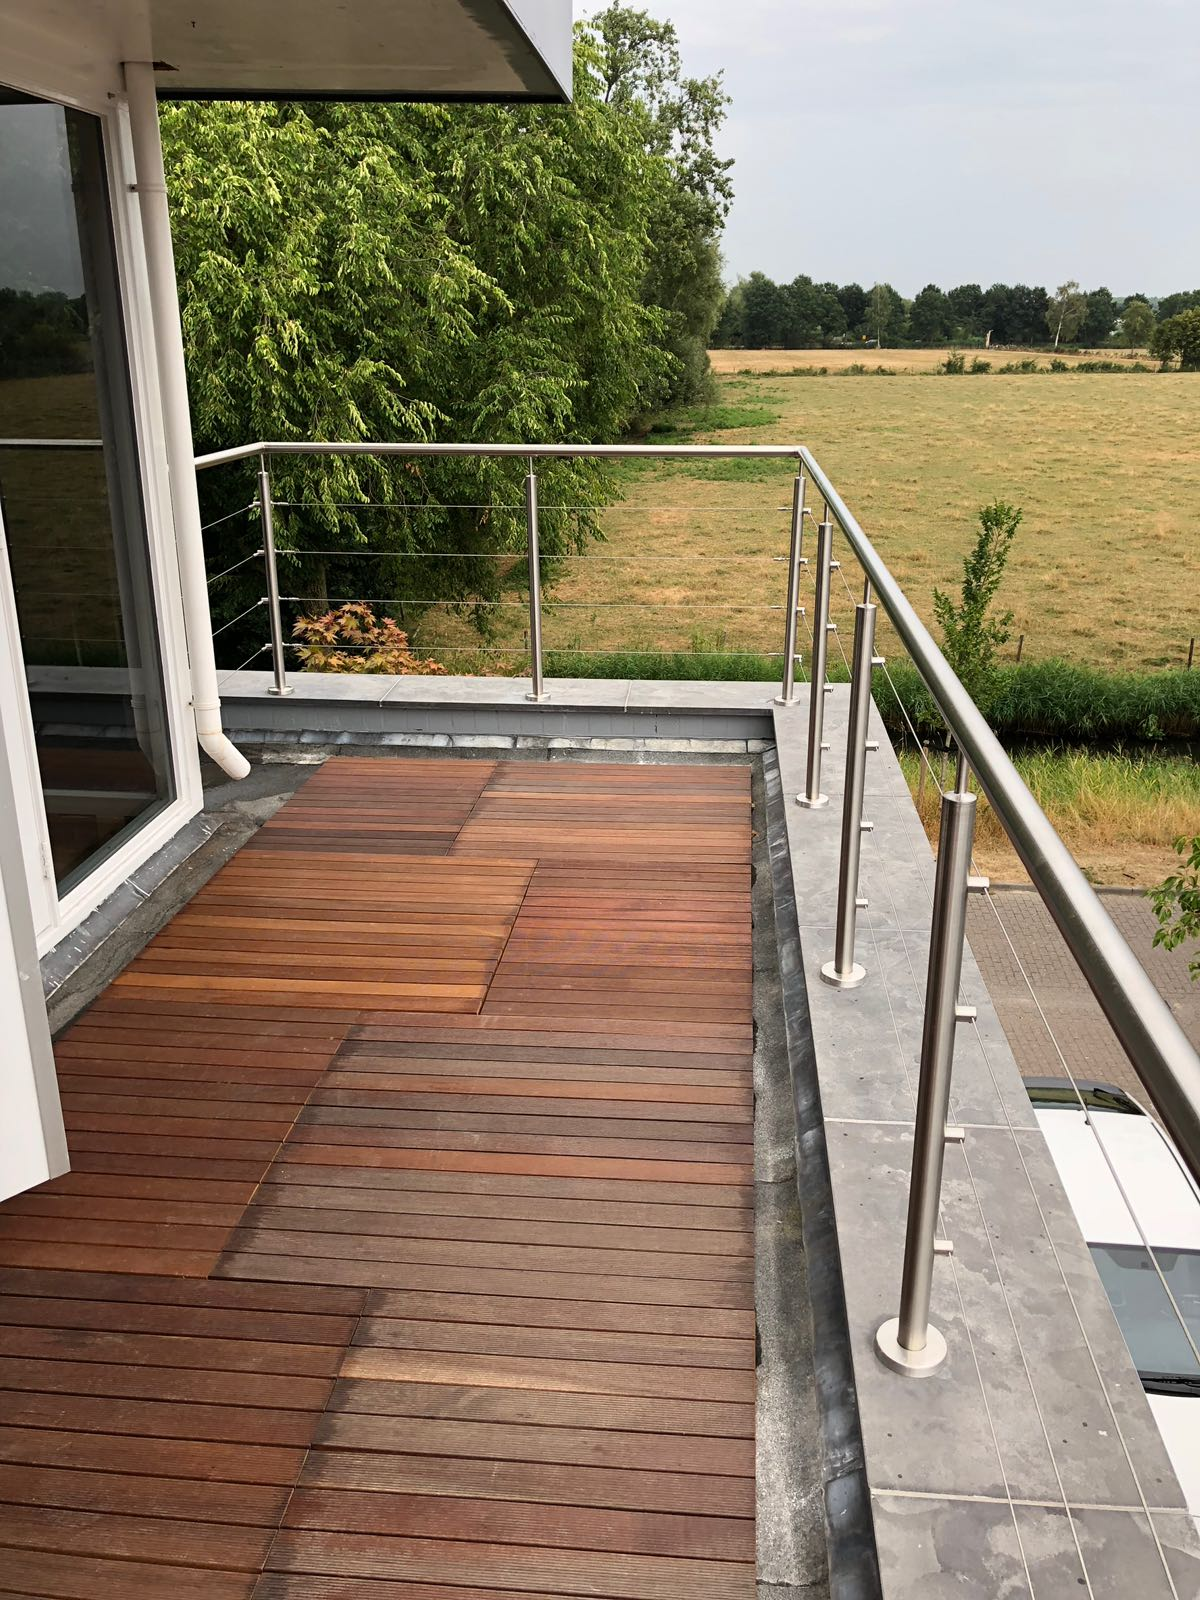 rvs balustrade met rvs kabel